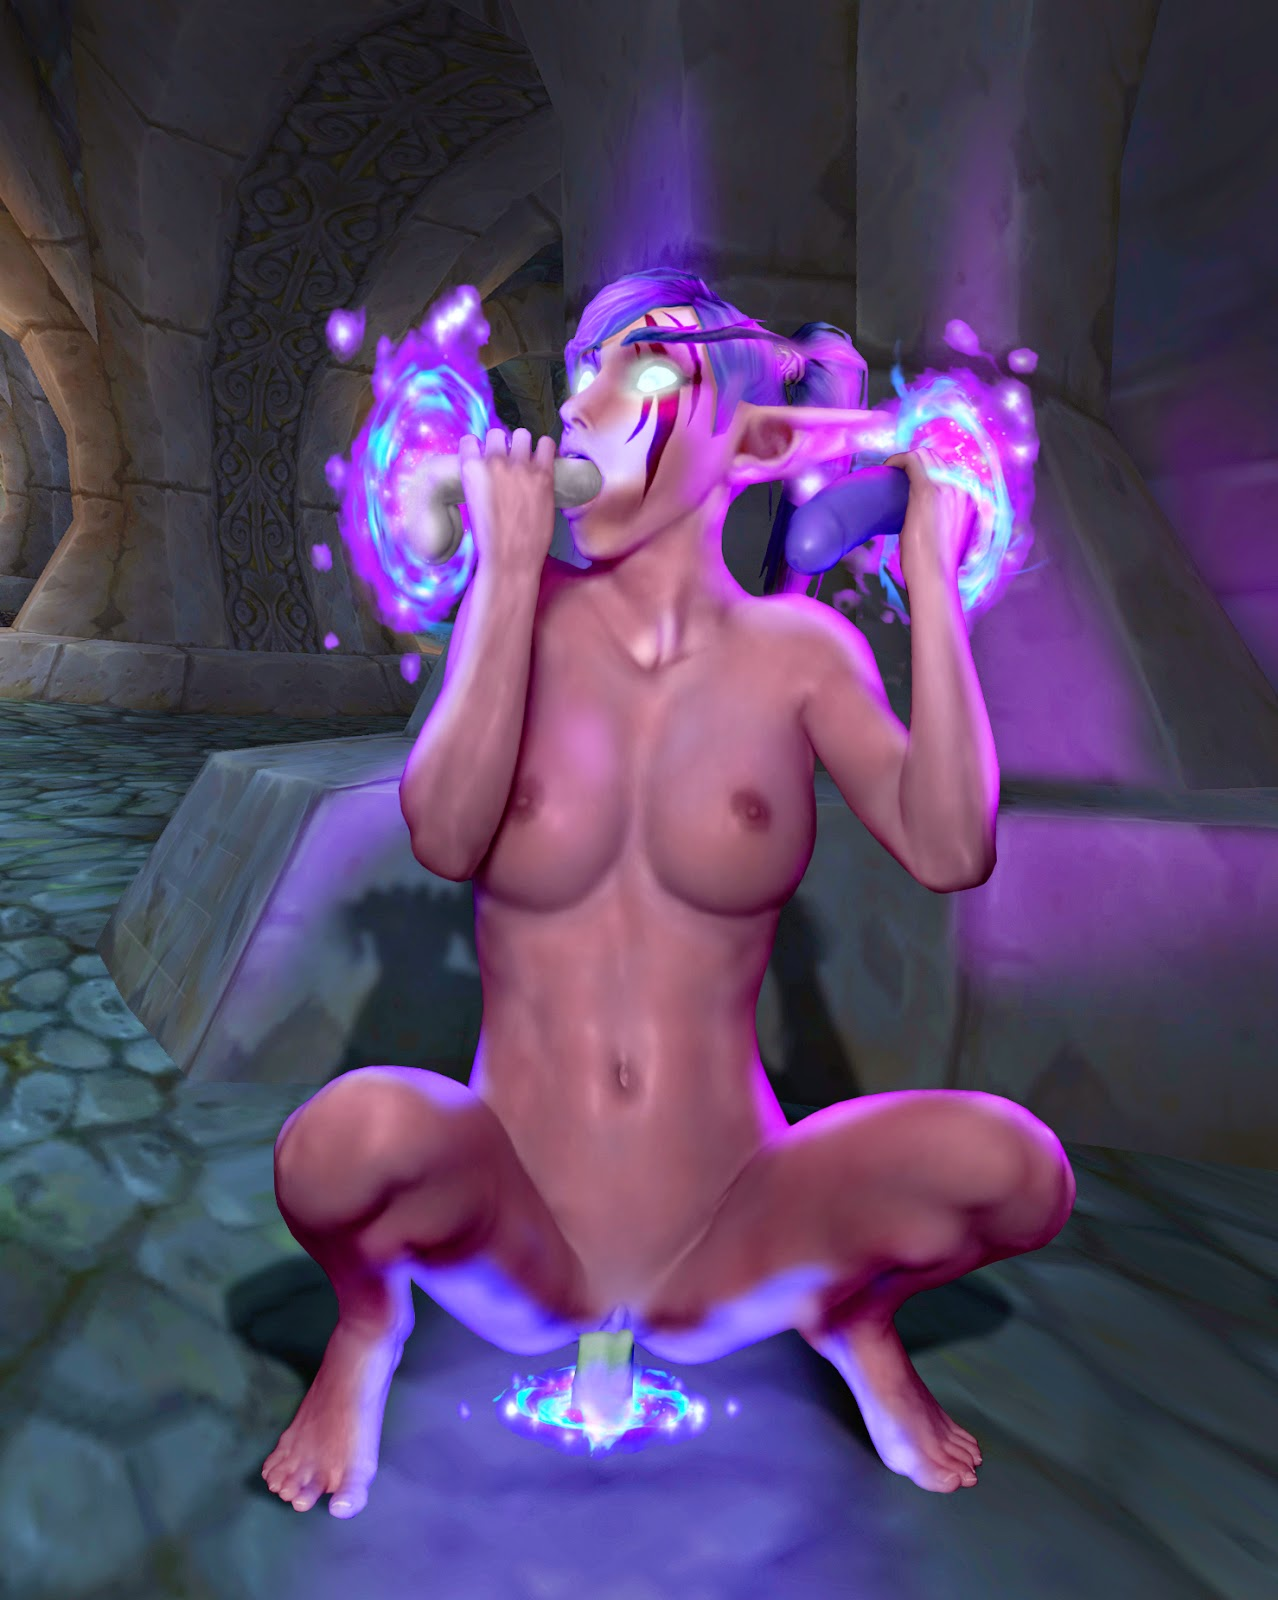 World of warcraft sex pics naked elves  hentai clips